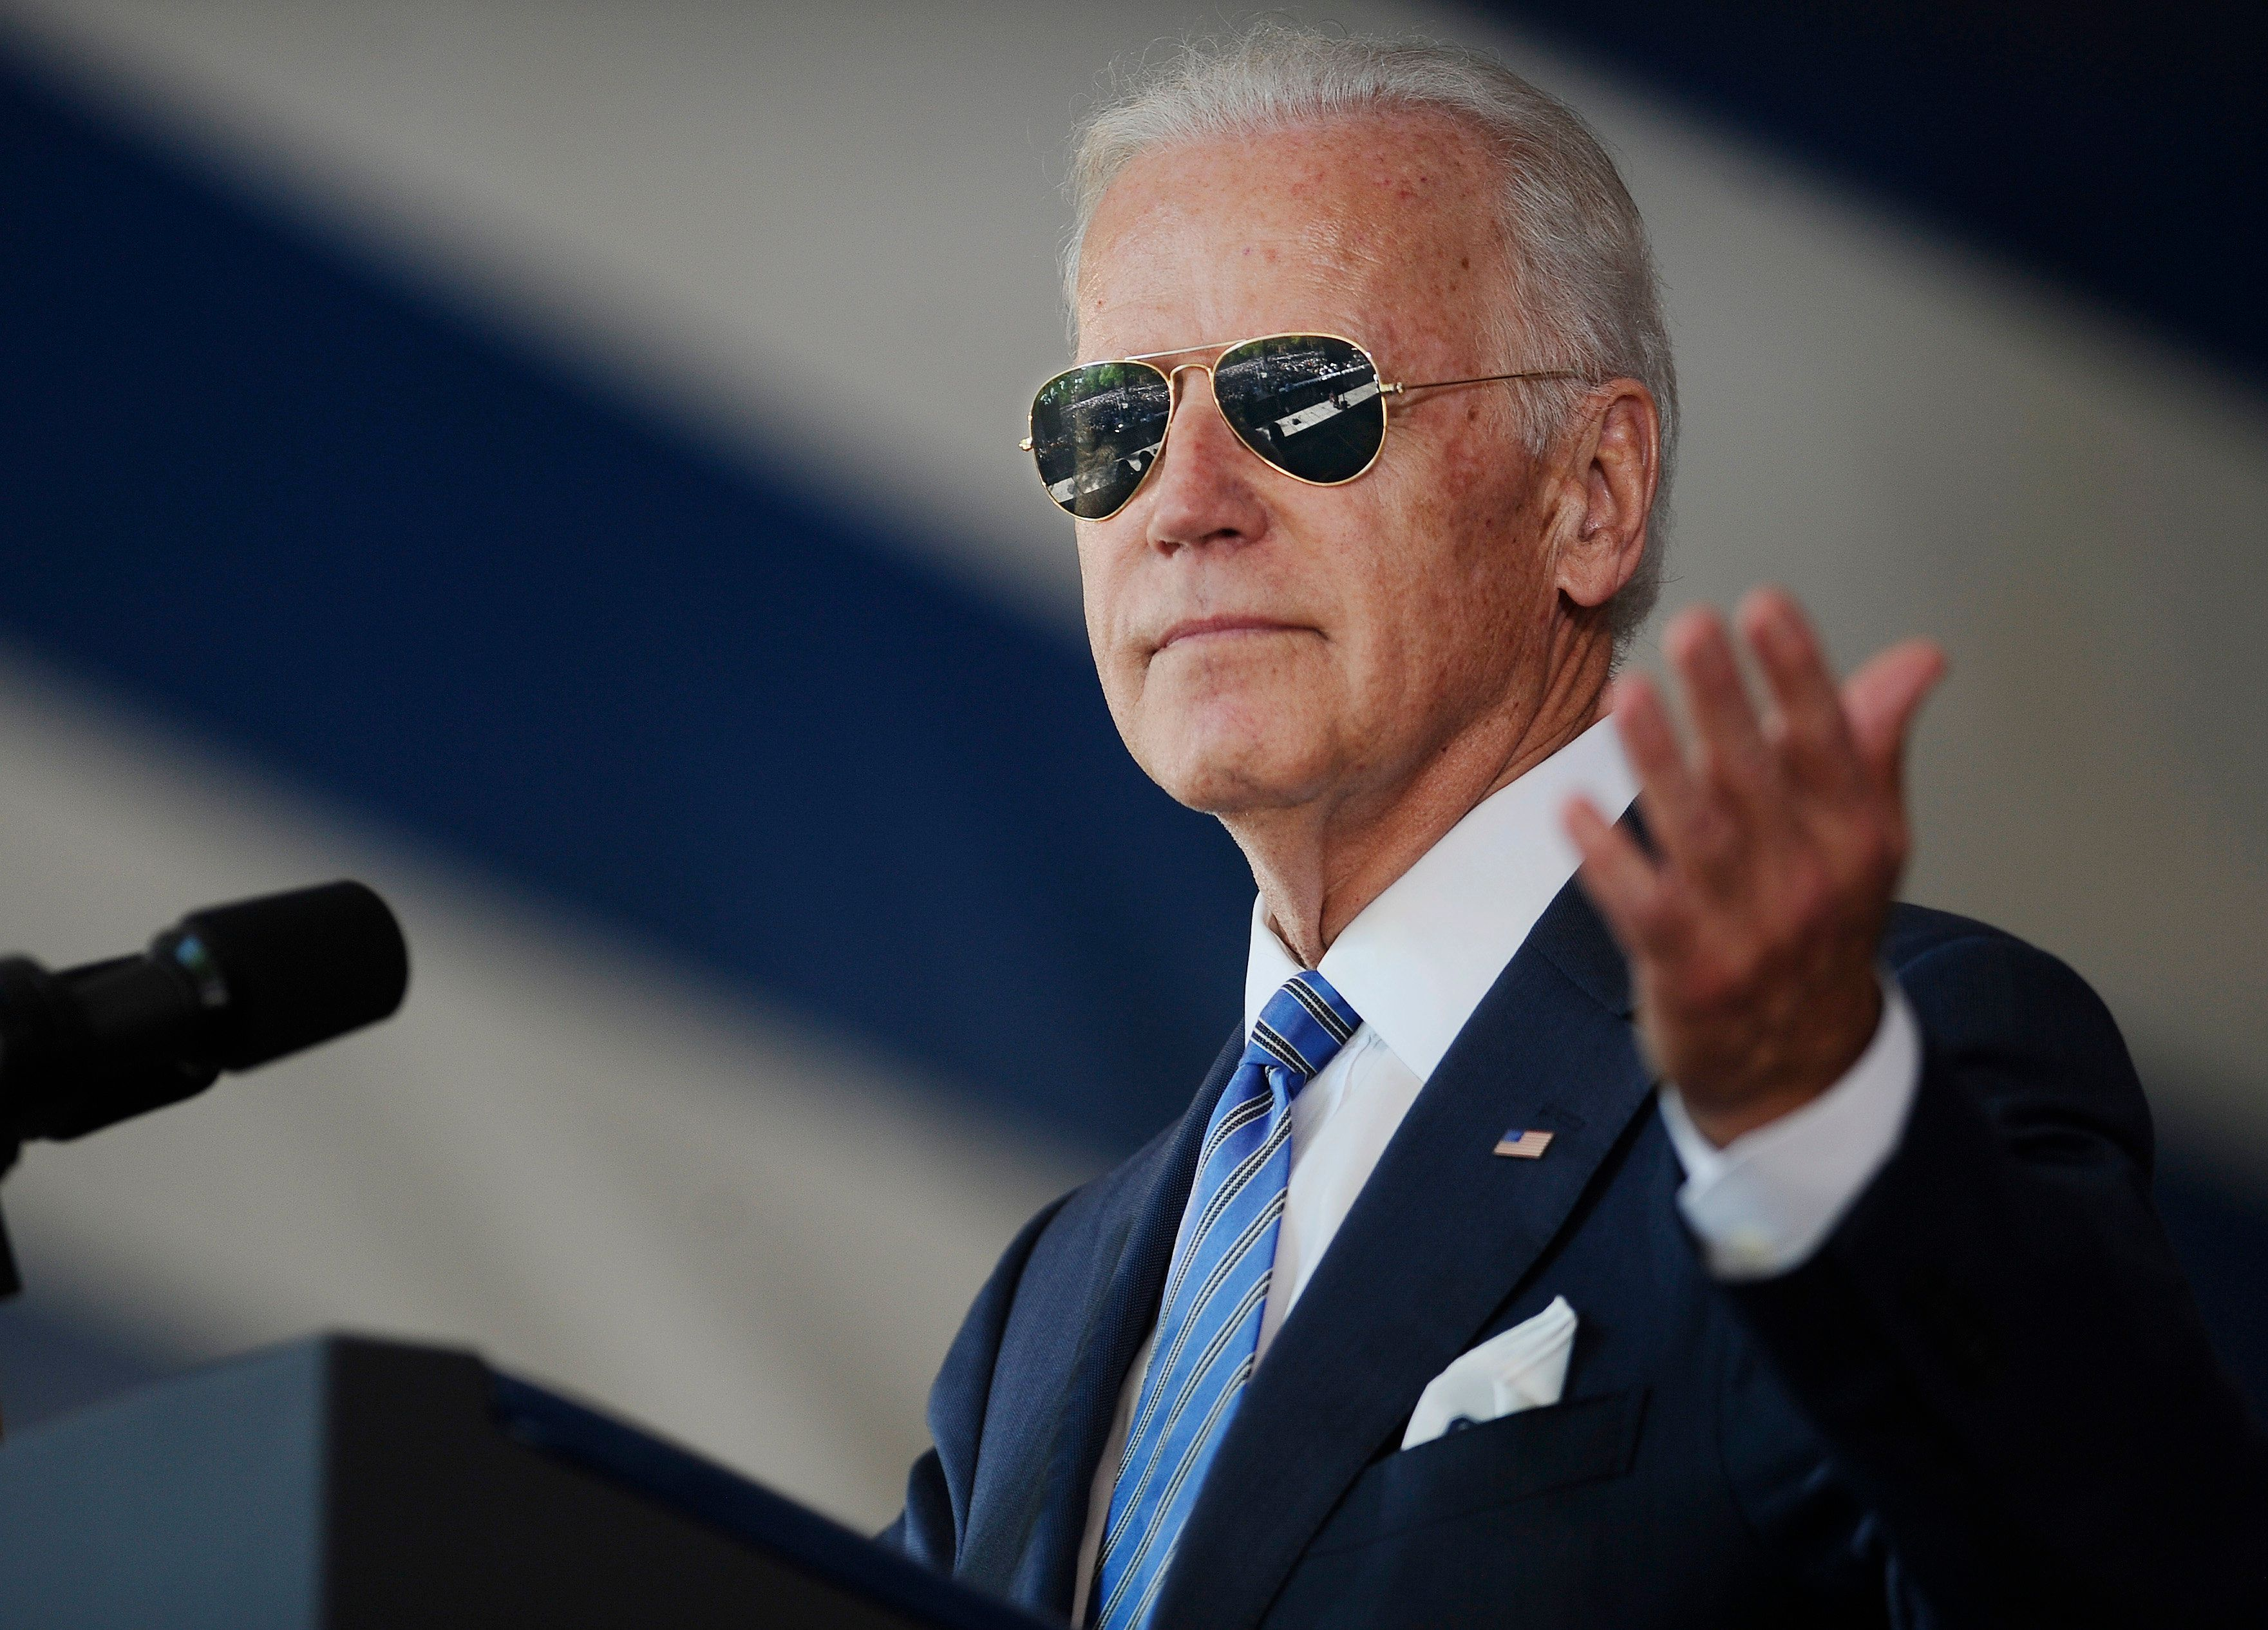 Democratic voters are debating which of their potential primary candidates, including former Vice President Joe Biden, is in